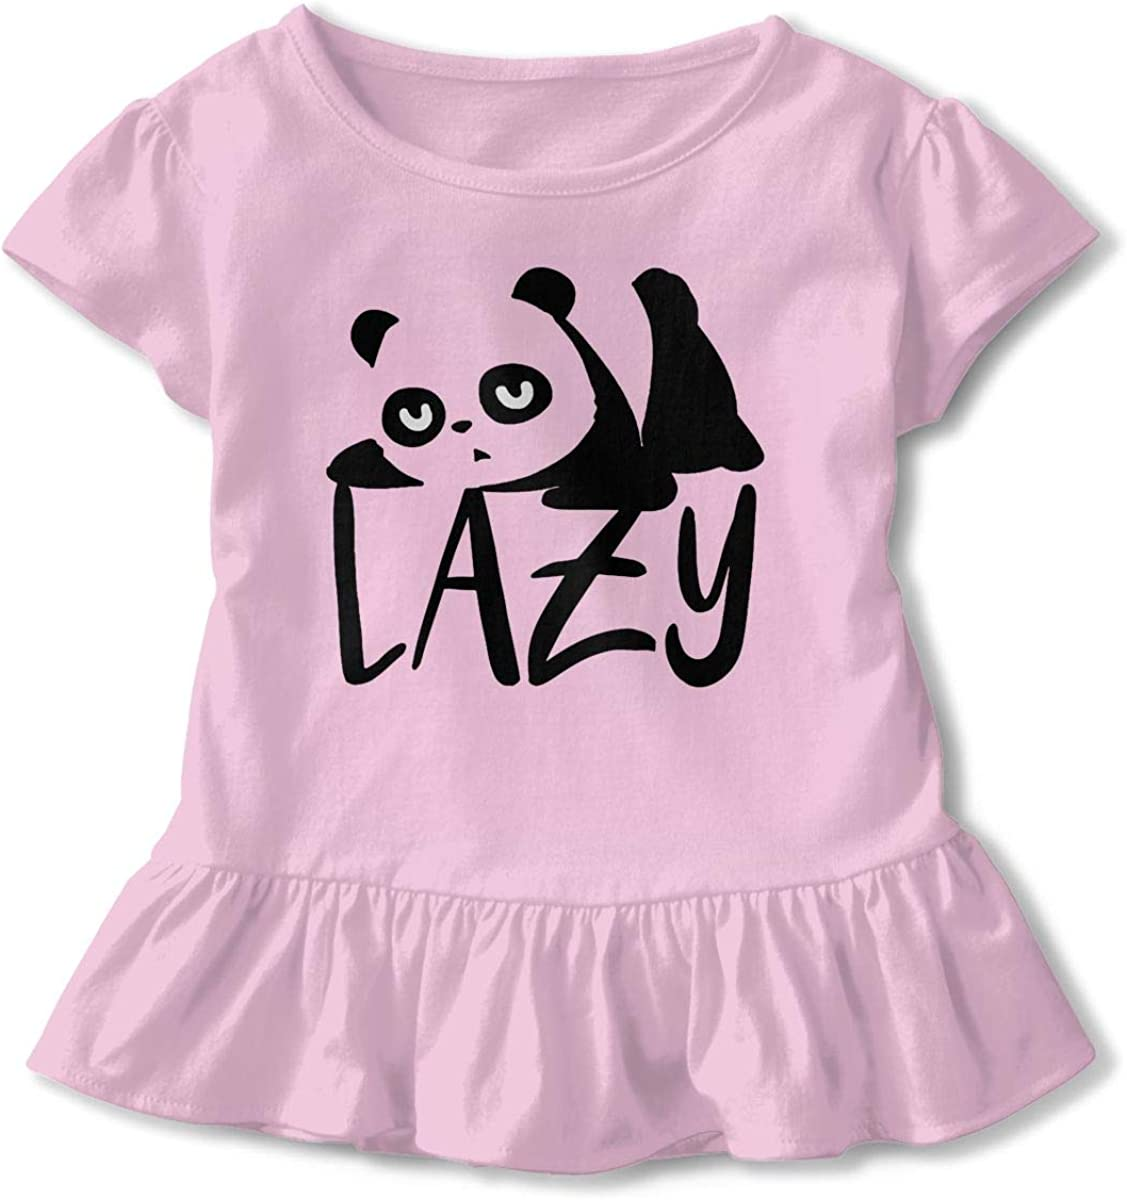 Lazy Panda Baby Girls Casual Ruffle Top T-Shirt Flounces Dress Toddler Girls Summer Tops